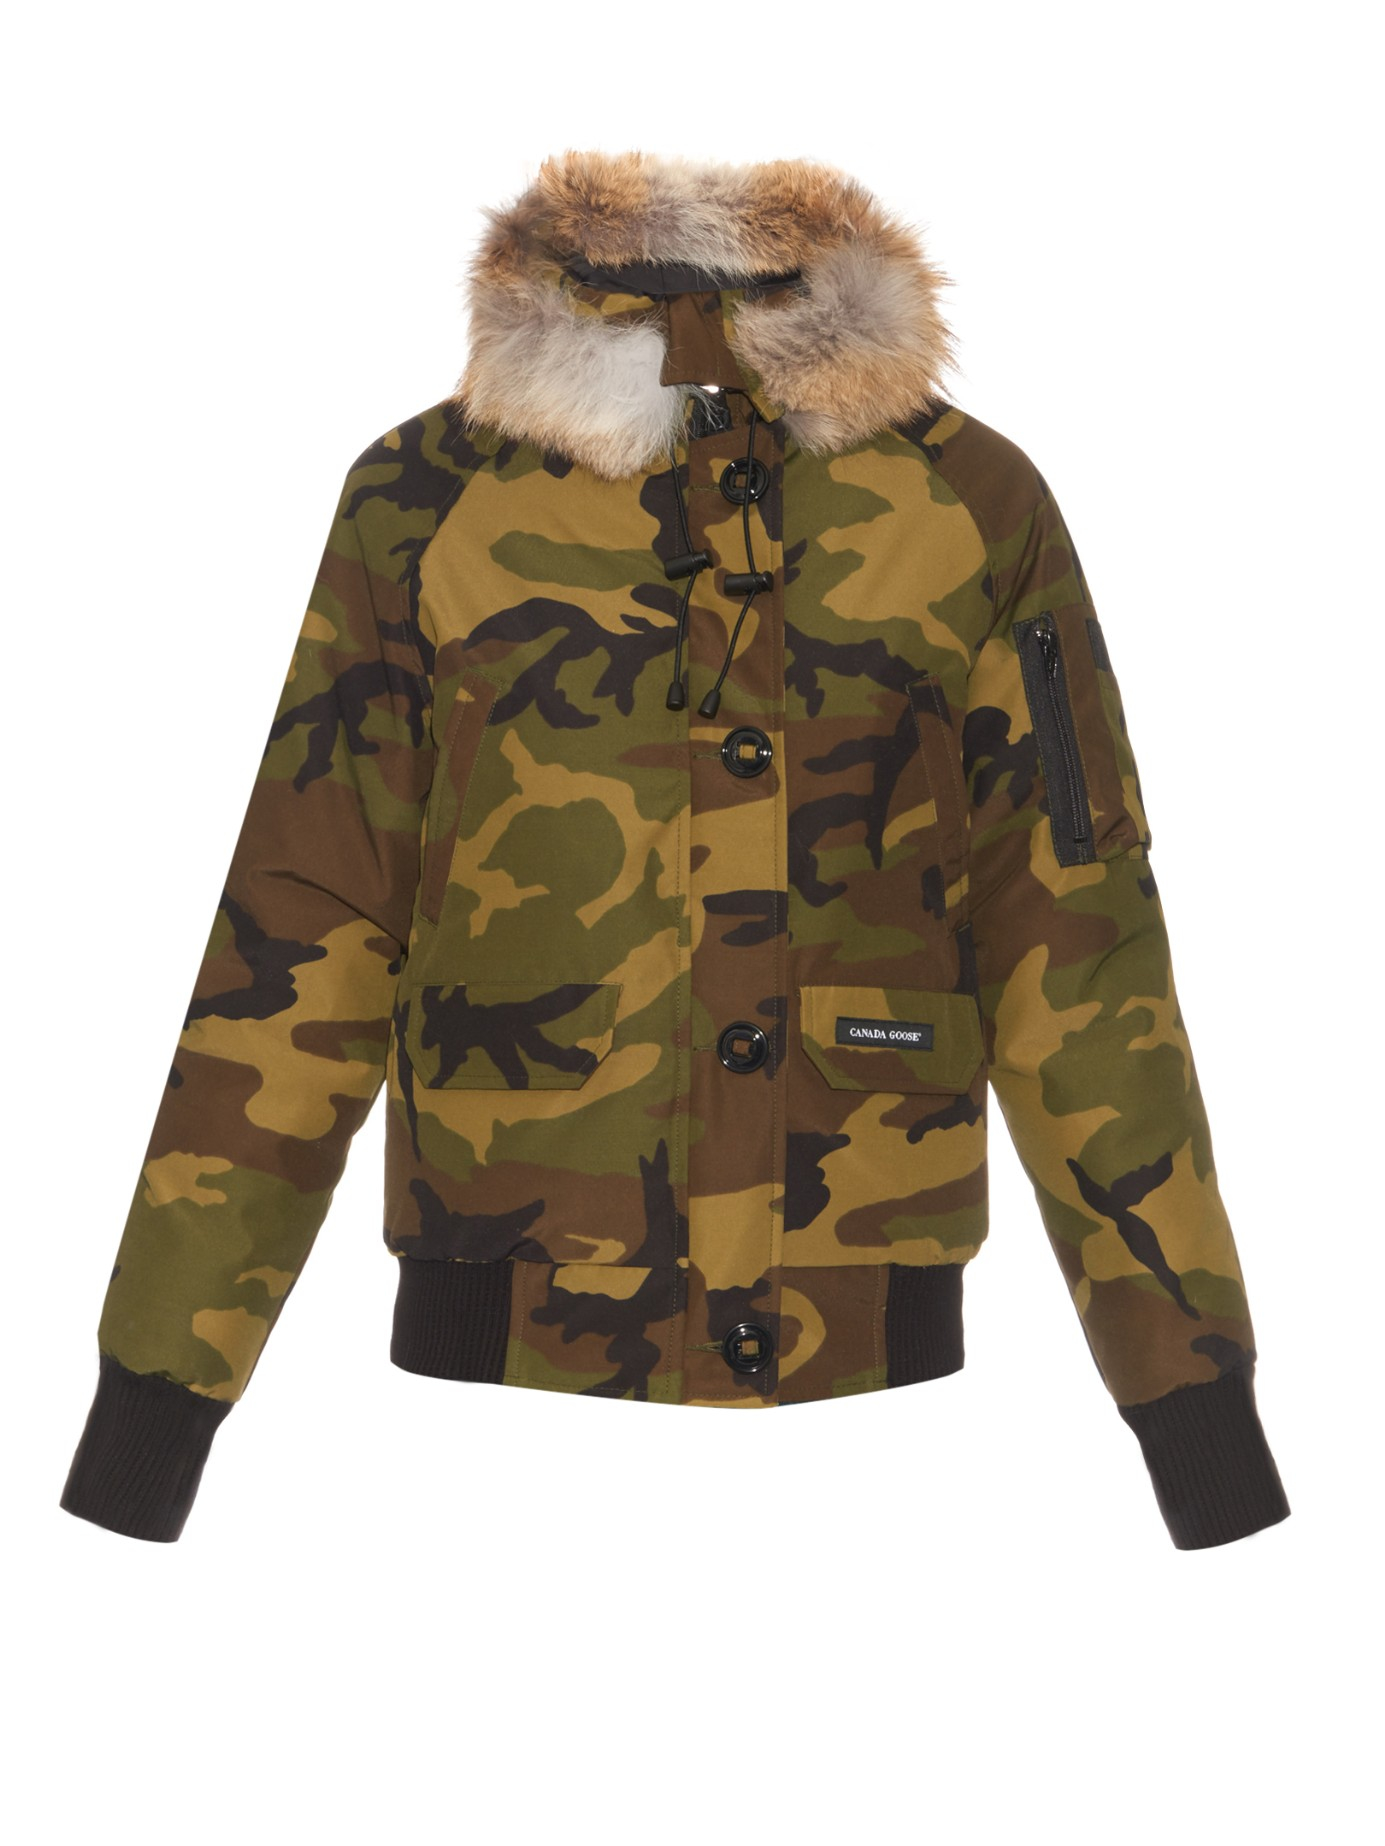 back to top of where to buy canada goose lady jackets in london